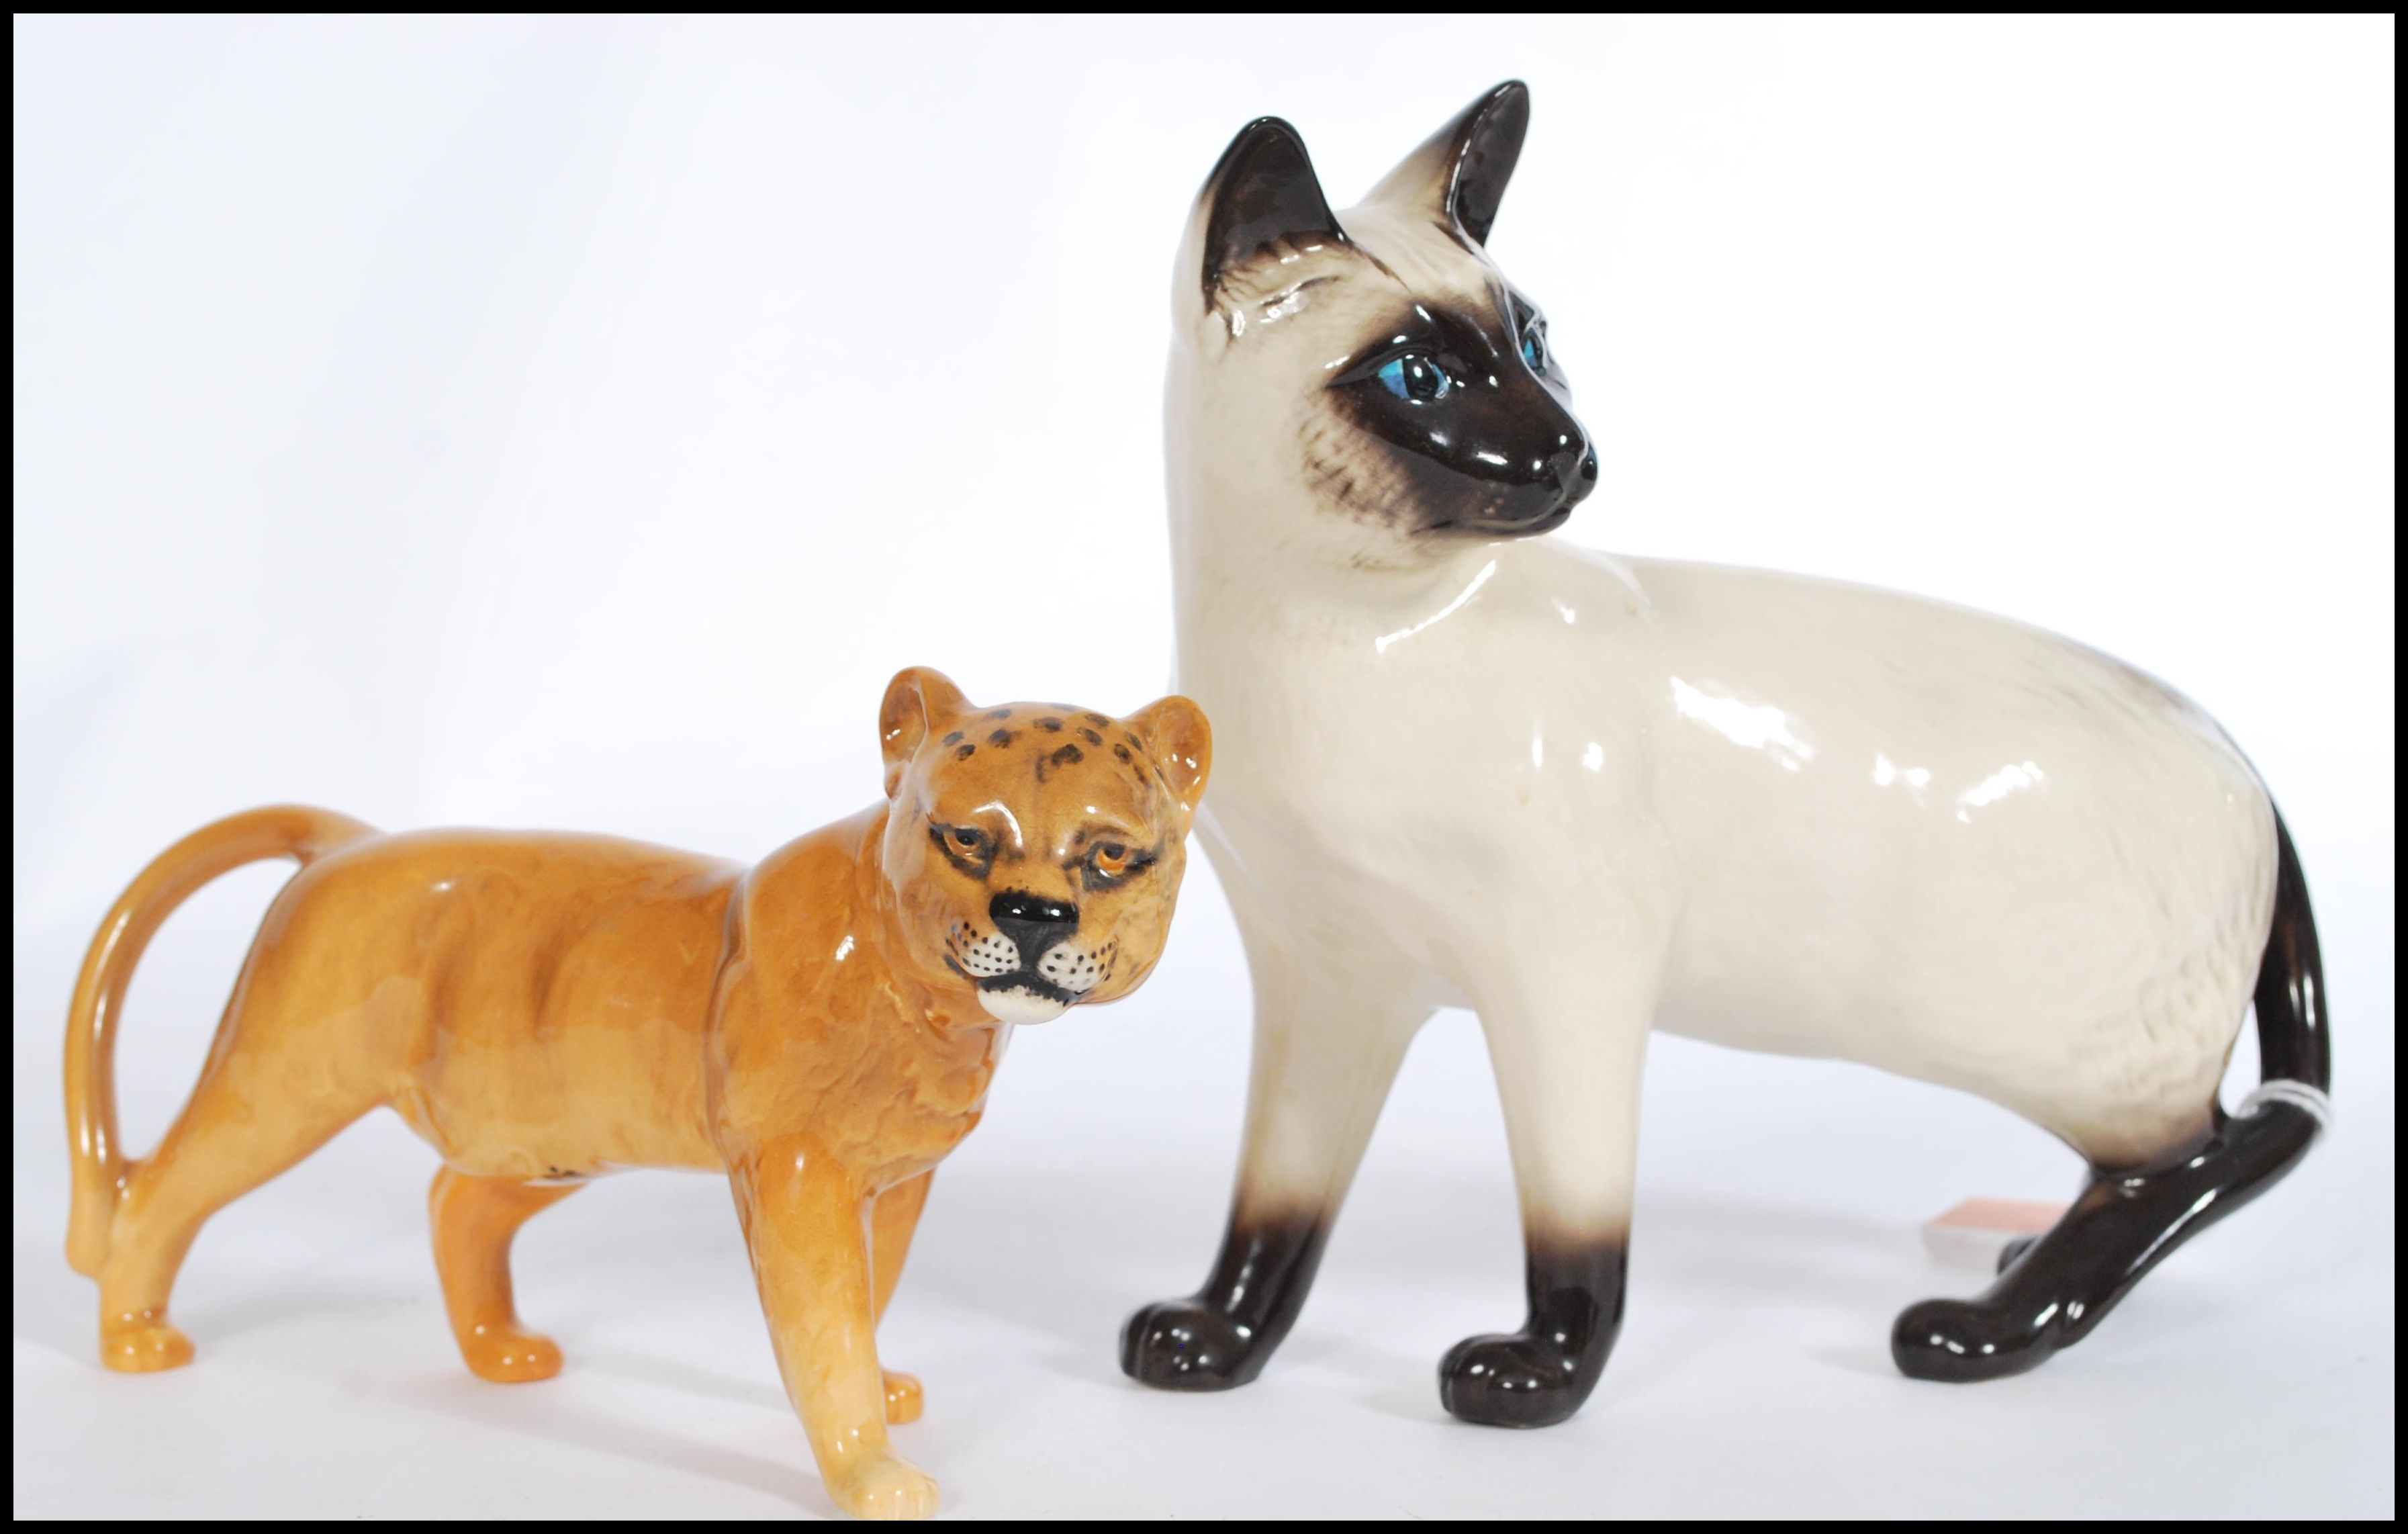 Lot 2 - A vintage Beswick ceramic figure modelled as a lioness along with a Royal Doulton figurine of a cat.